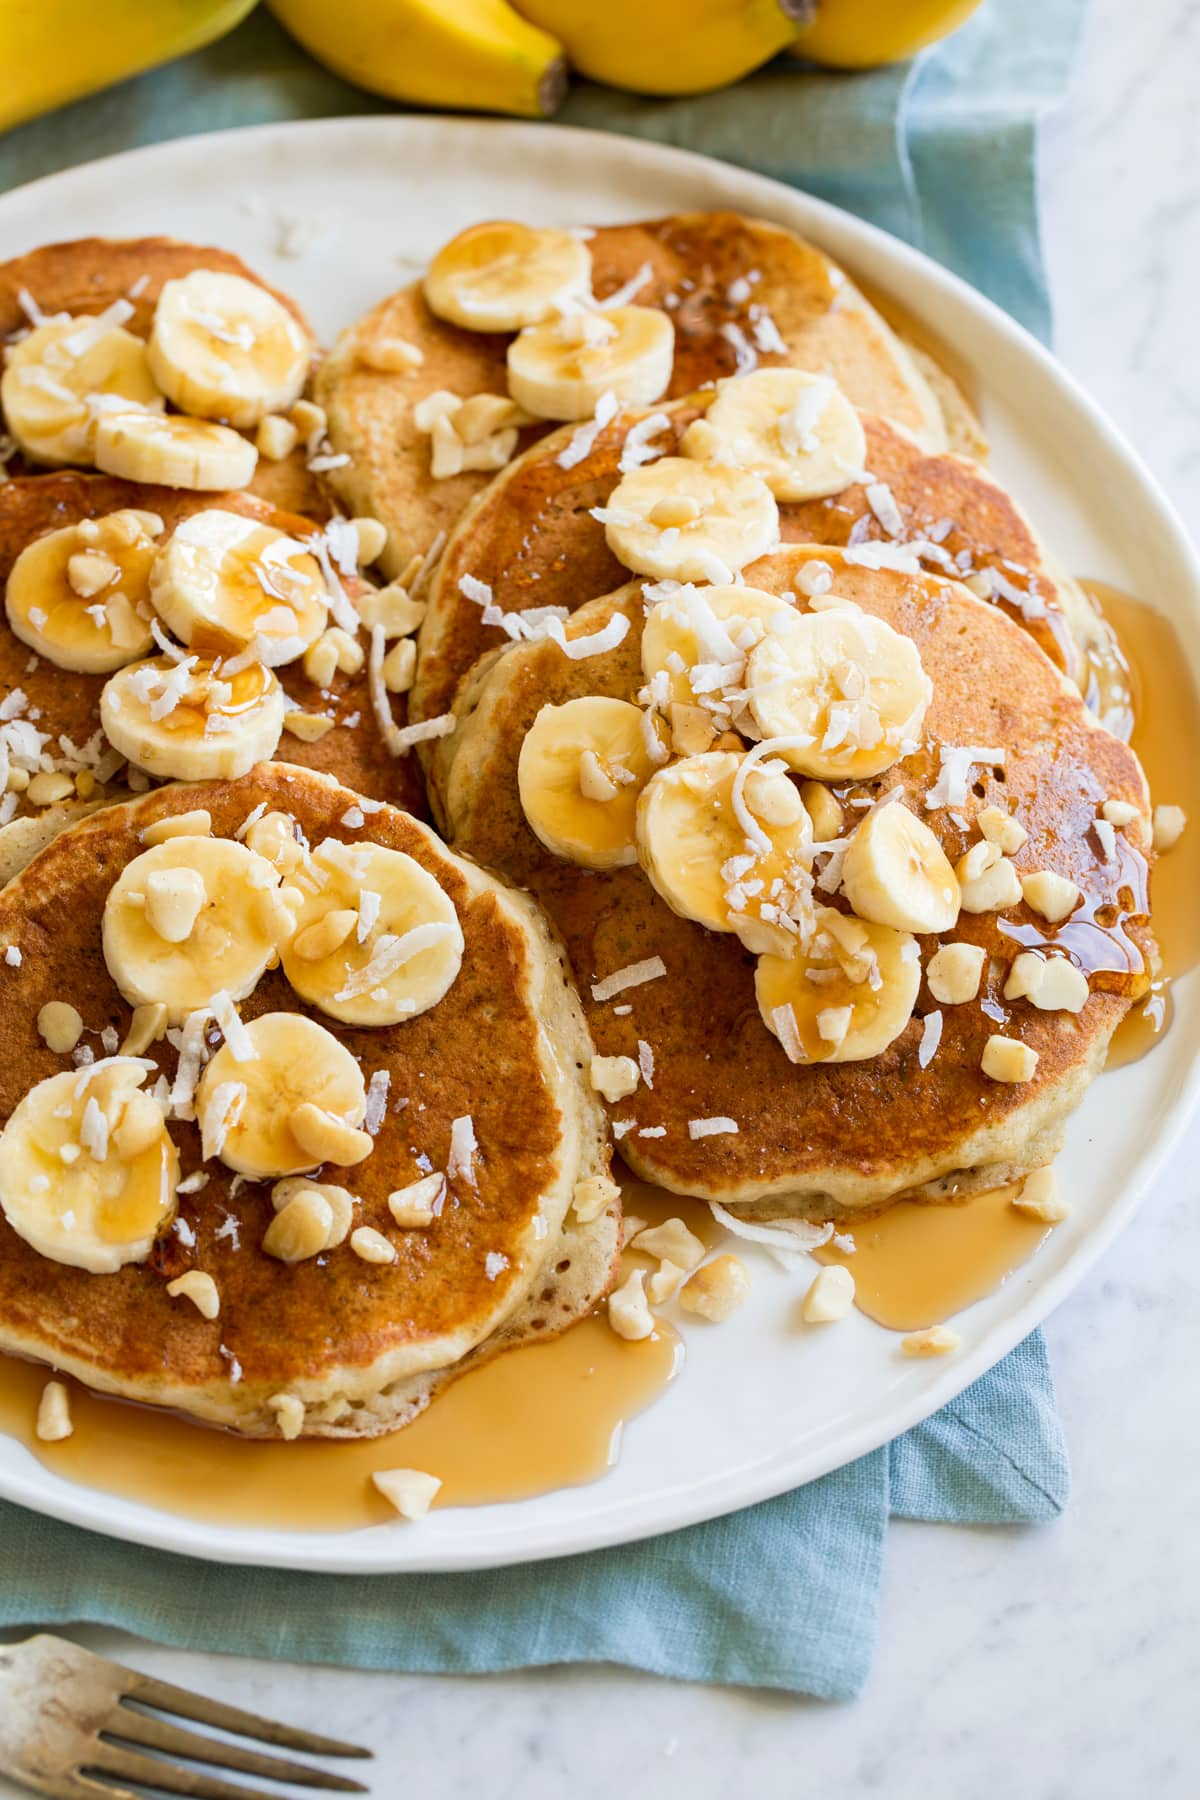 Banana pancakes topped with nuts, banana slices, coconut and maple syrup on a serving plate.